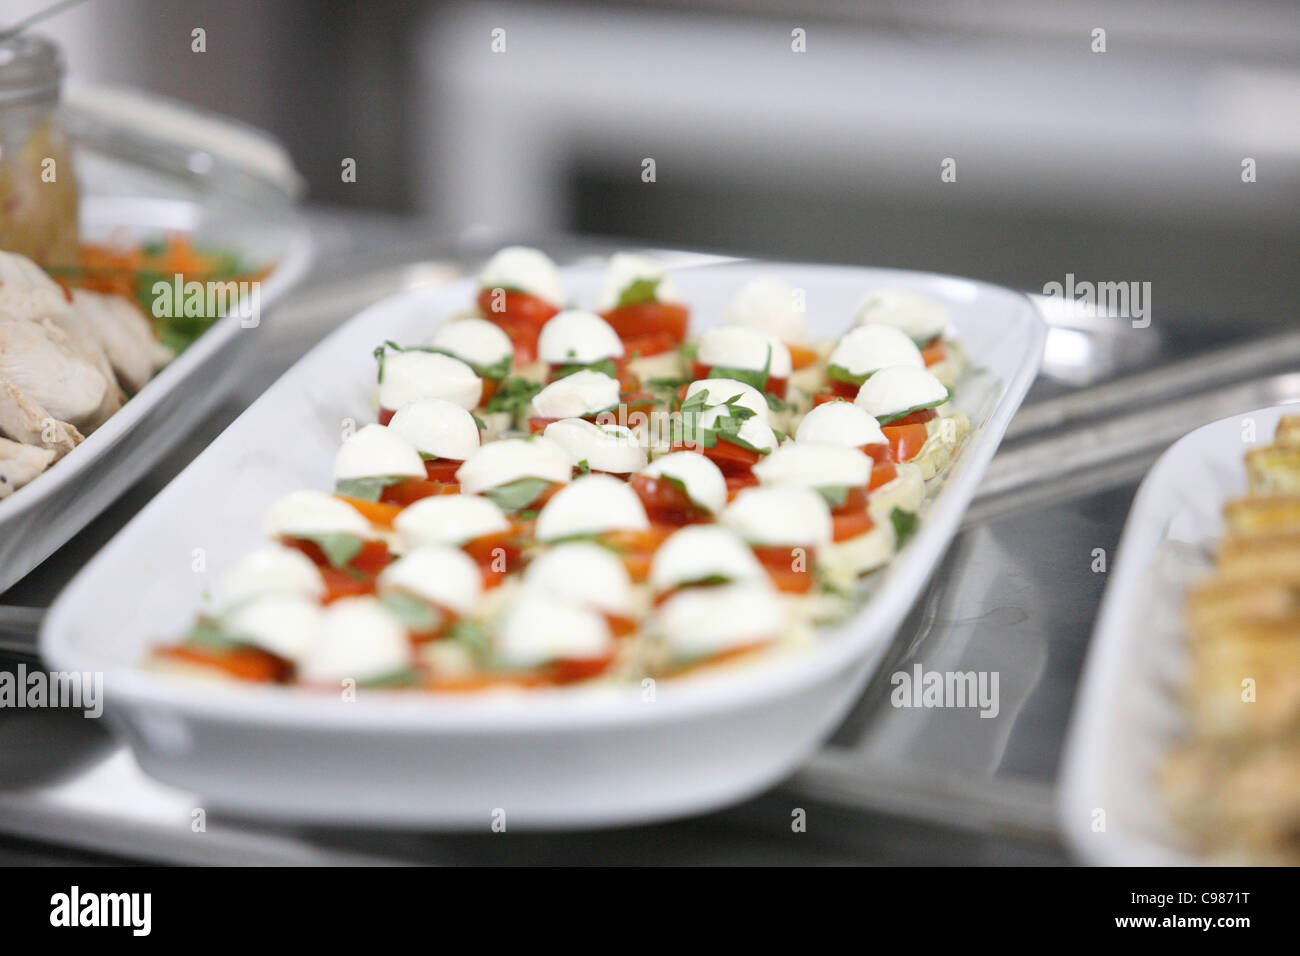 Canape on counter top - Stock Image